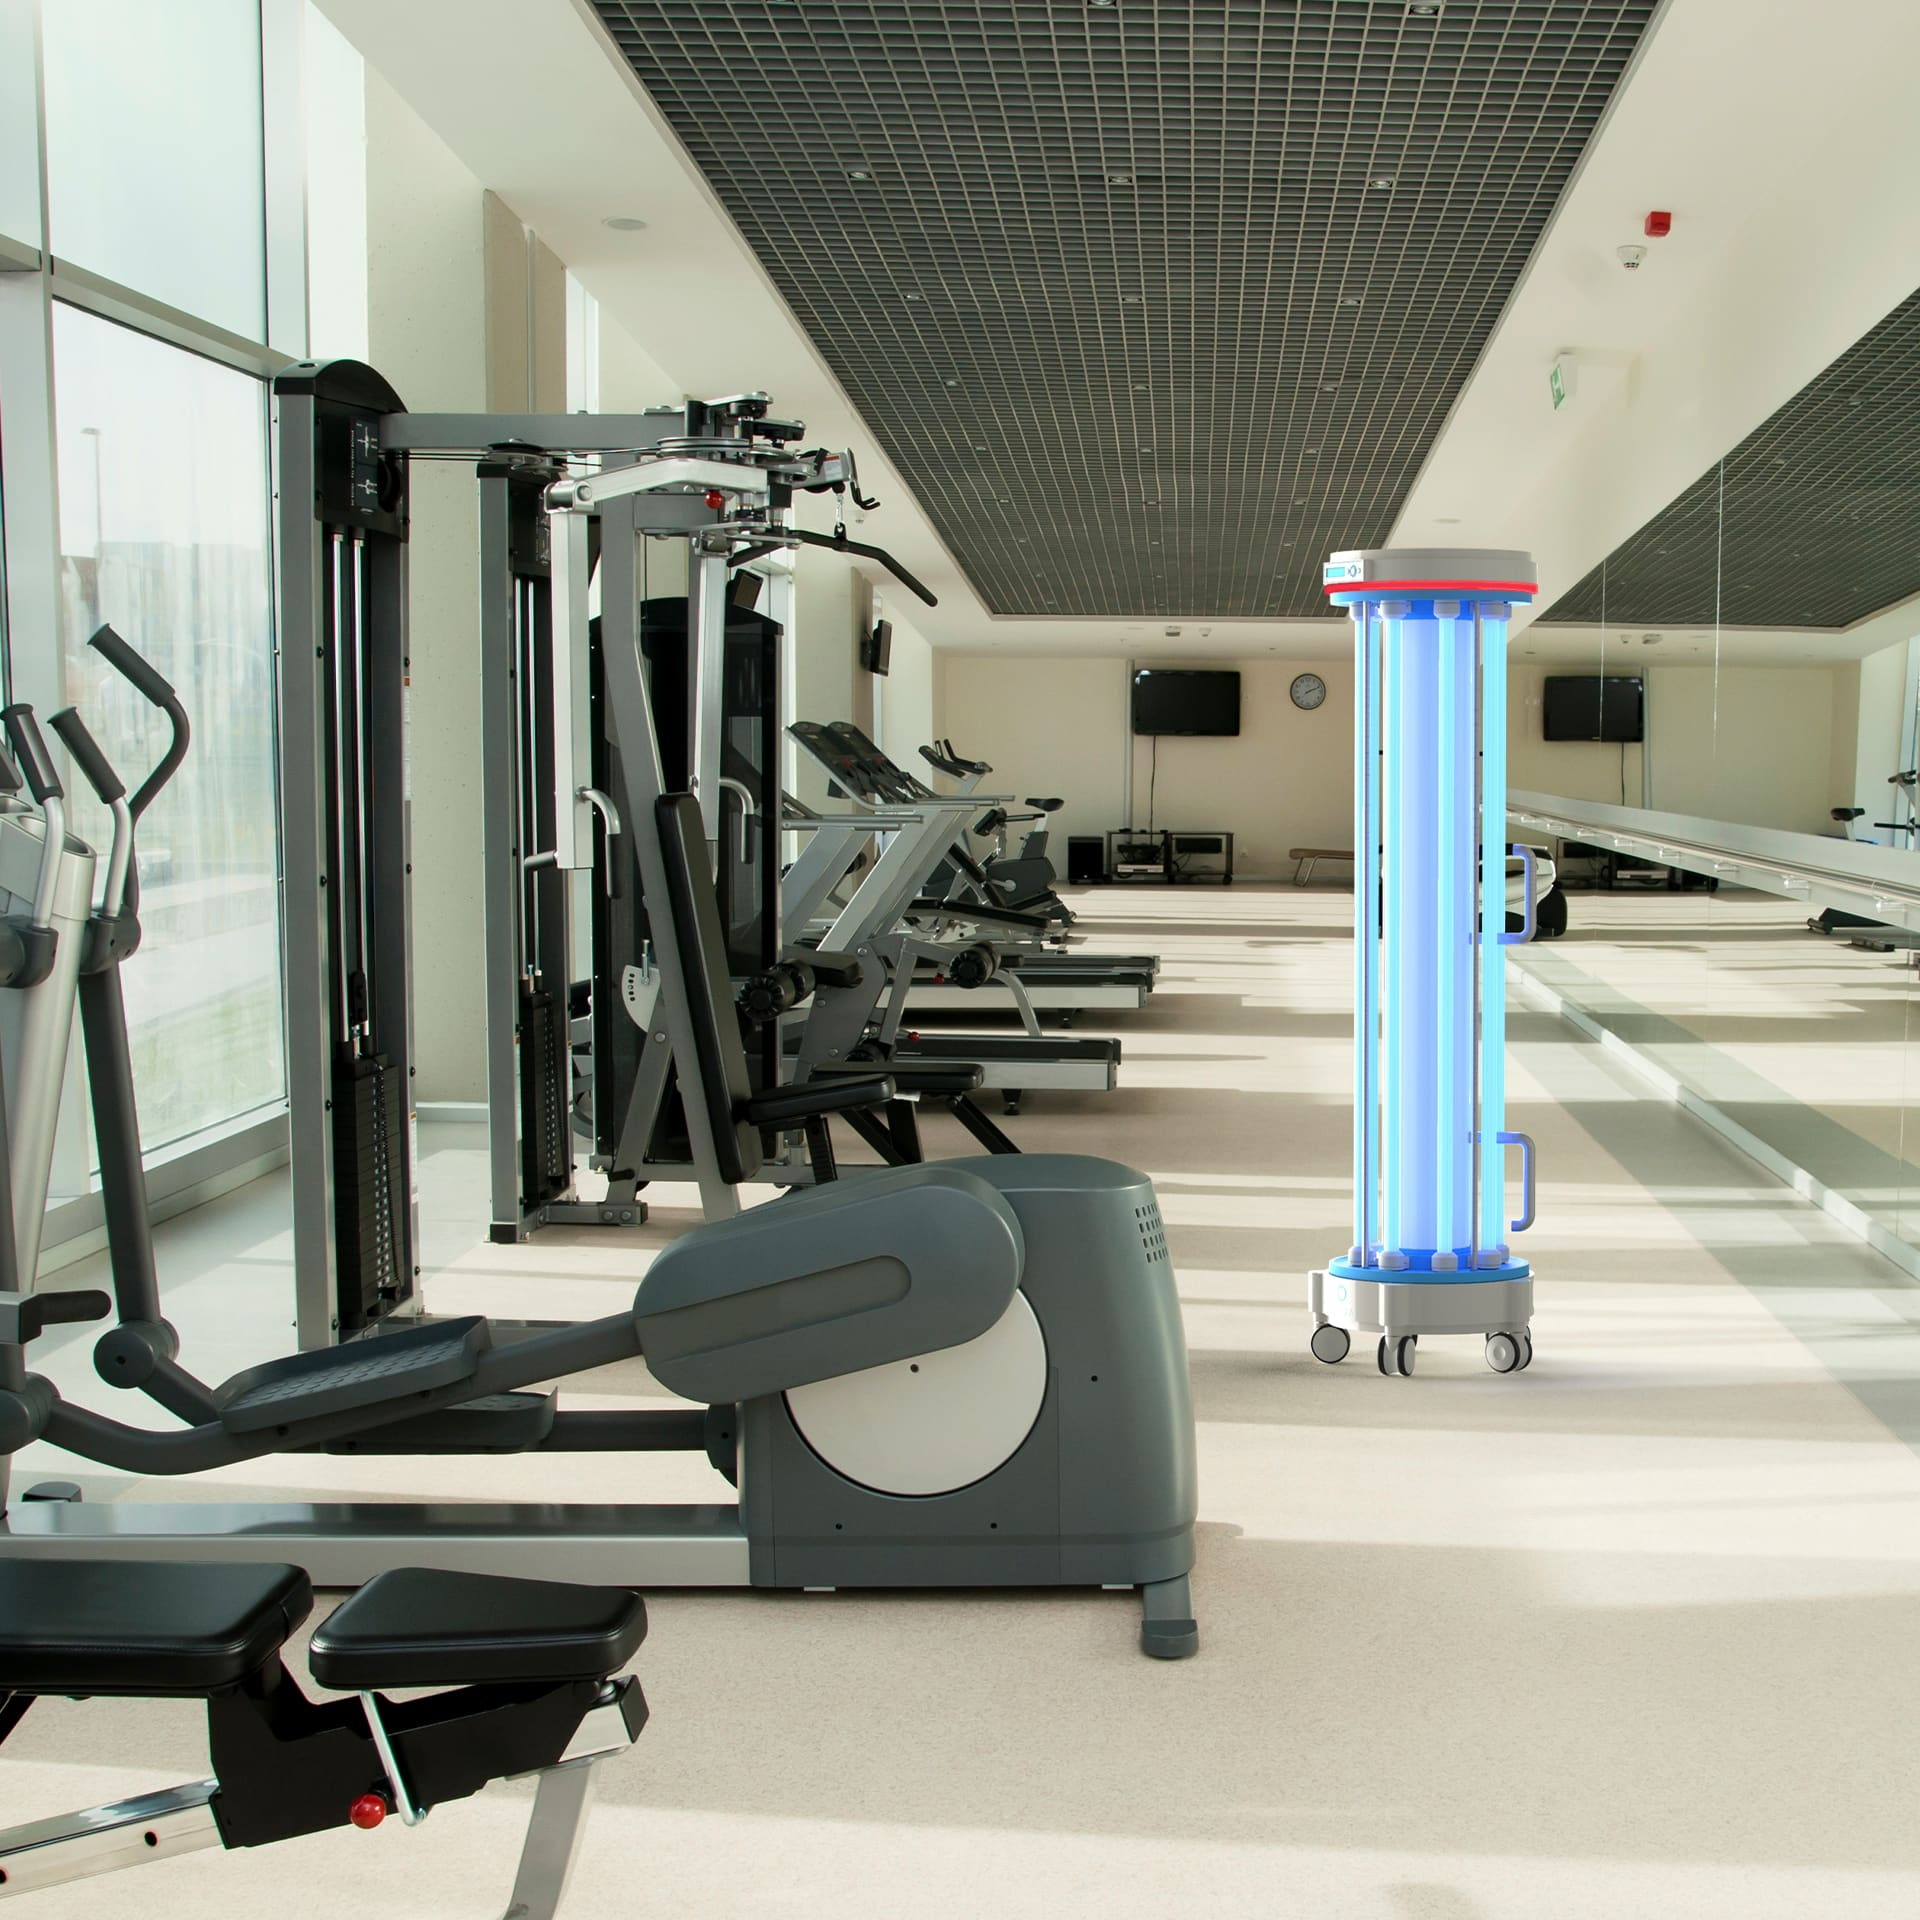 Mobile disinfection, UV cleaning, Gym